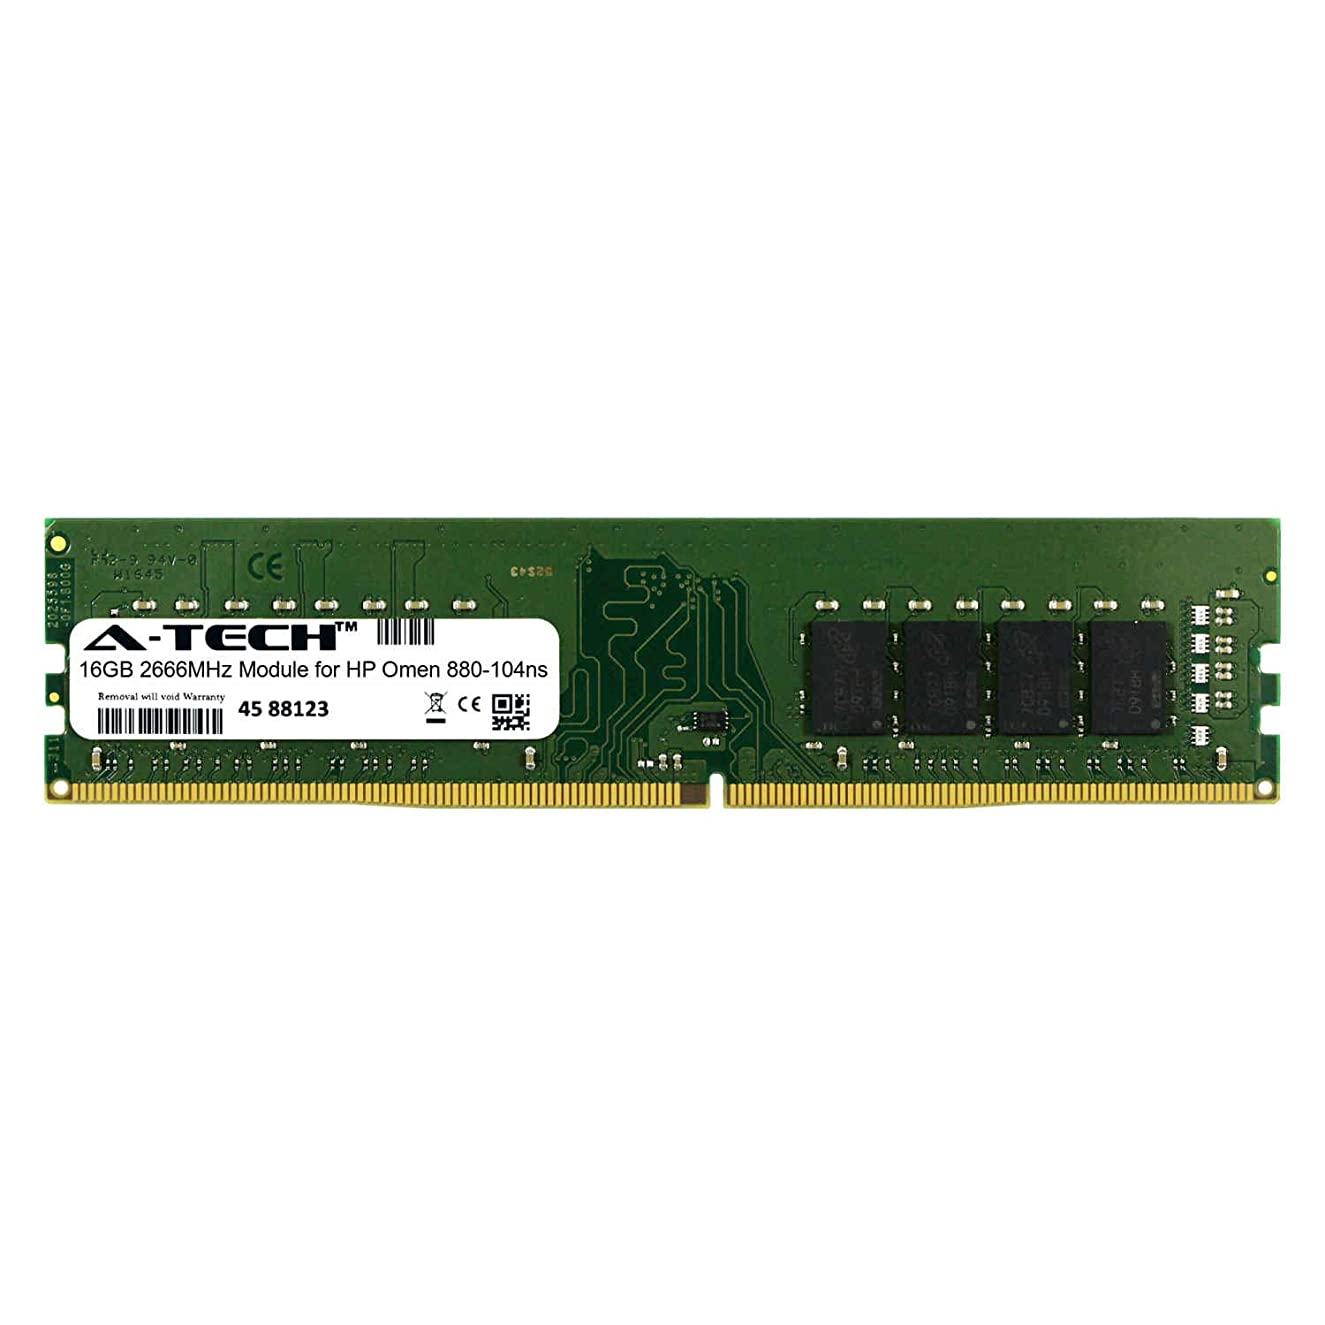 A-Tech 16GB Module for HP Omen 880-104ns Desktop & Workstation Motherboard Compatible DDR4 2666Mhz Memory Ram (ATMS282684A25823X1)